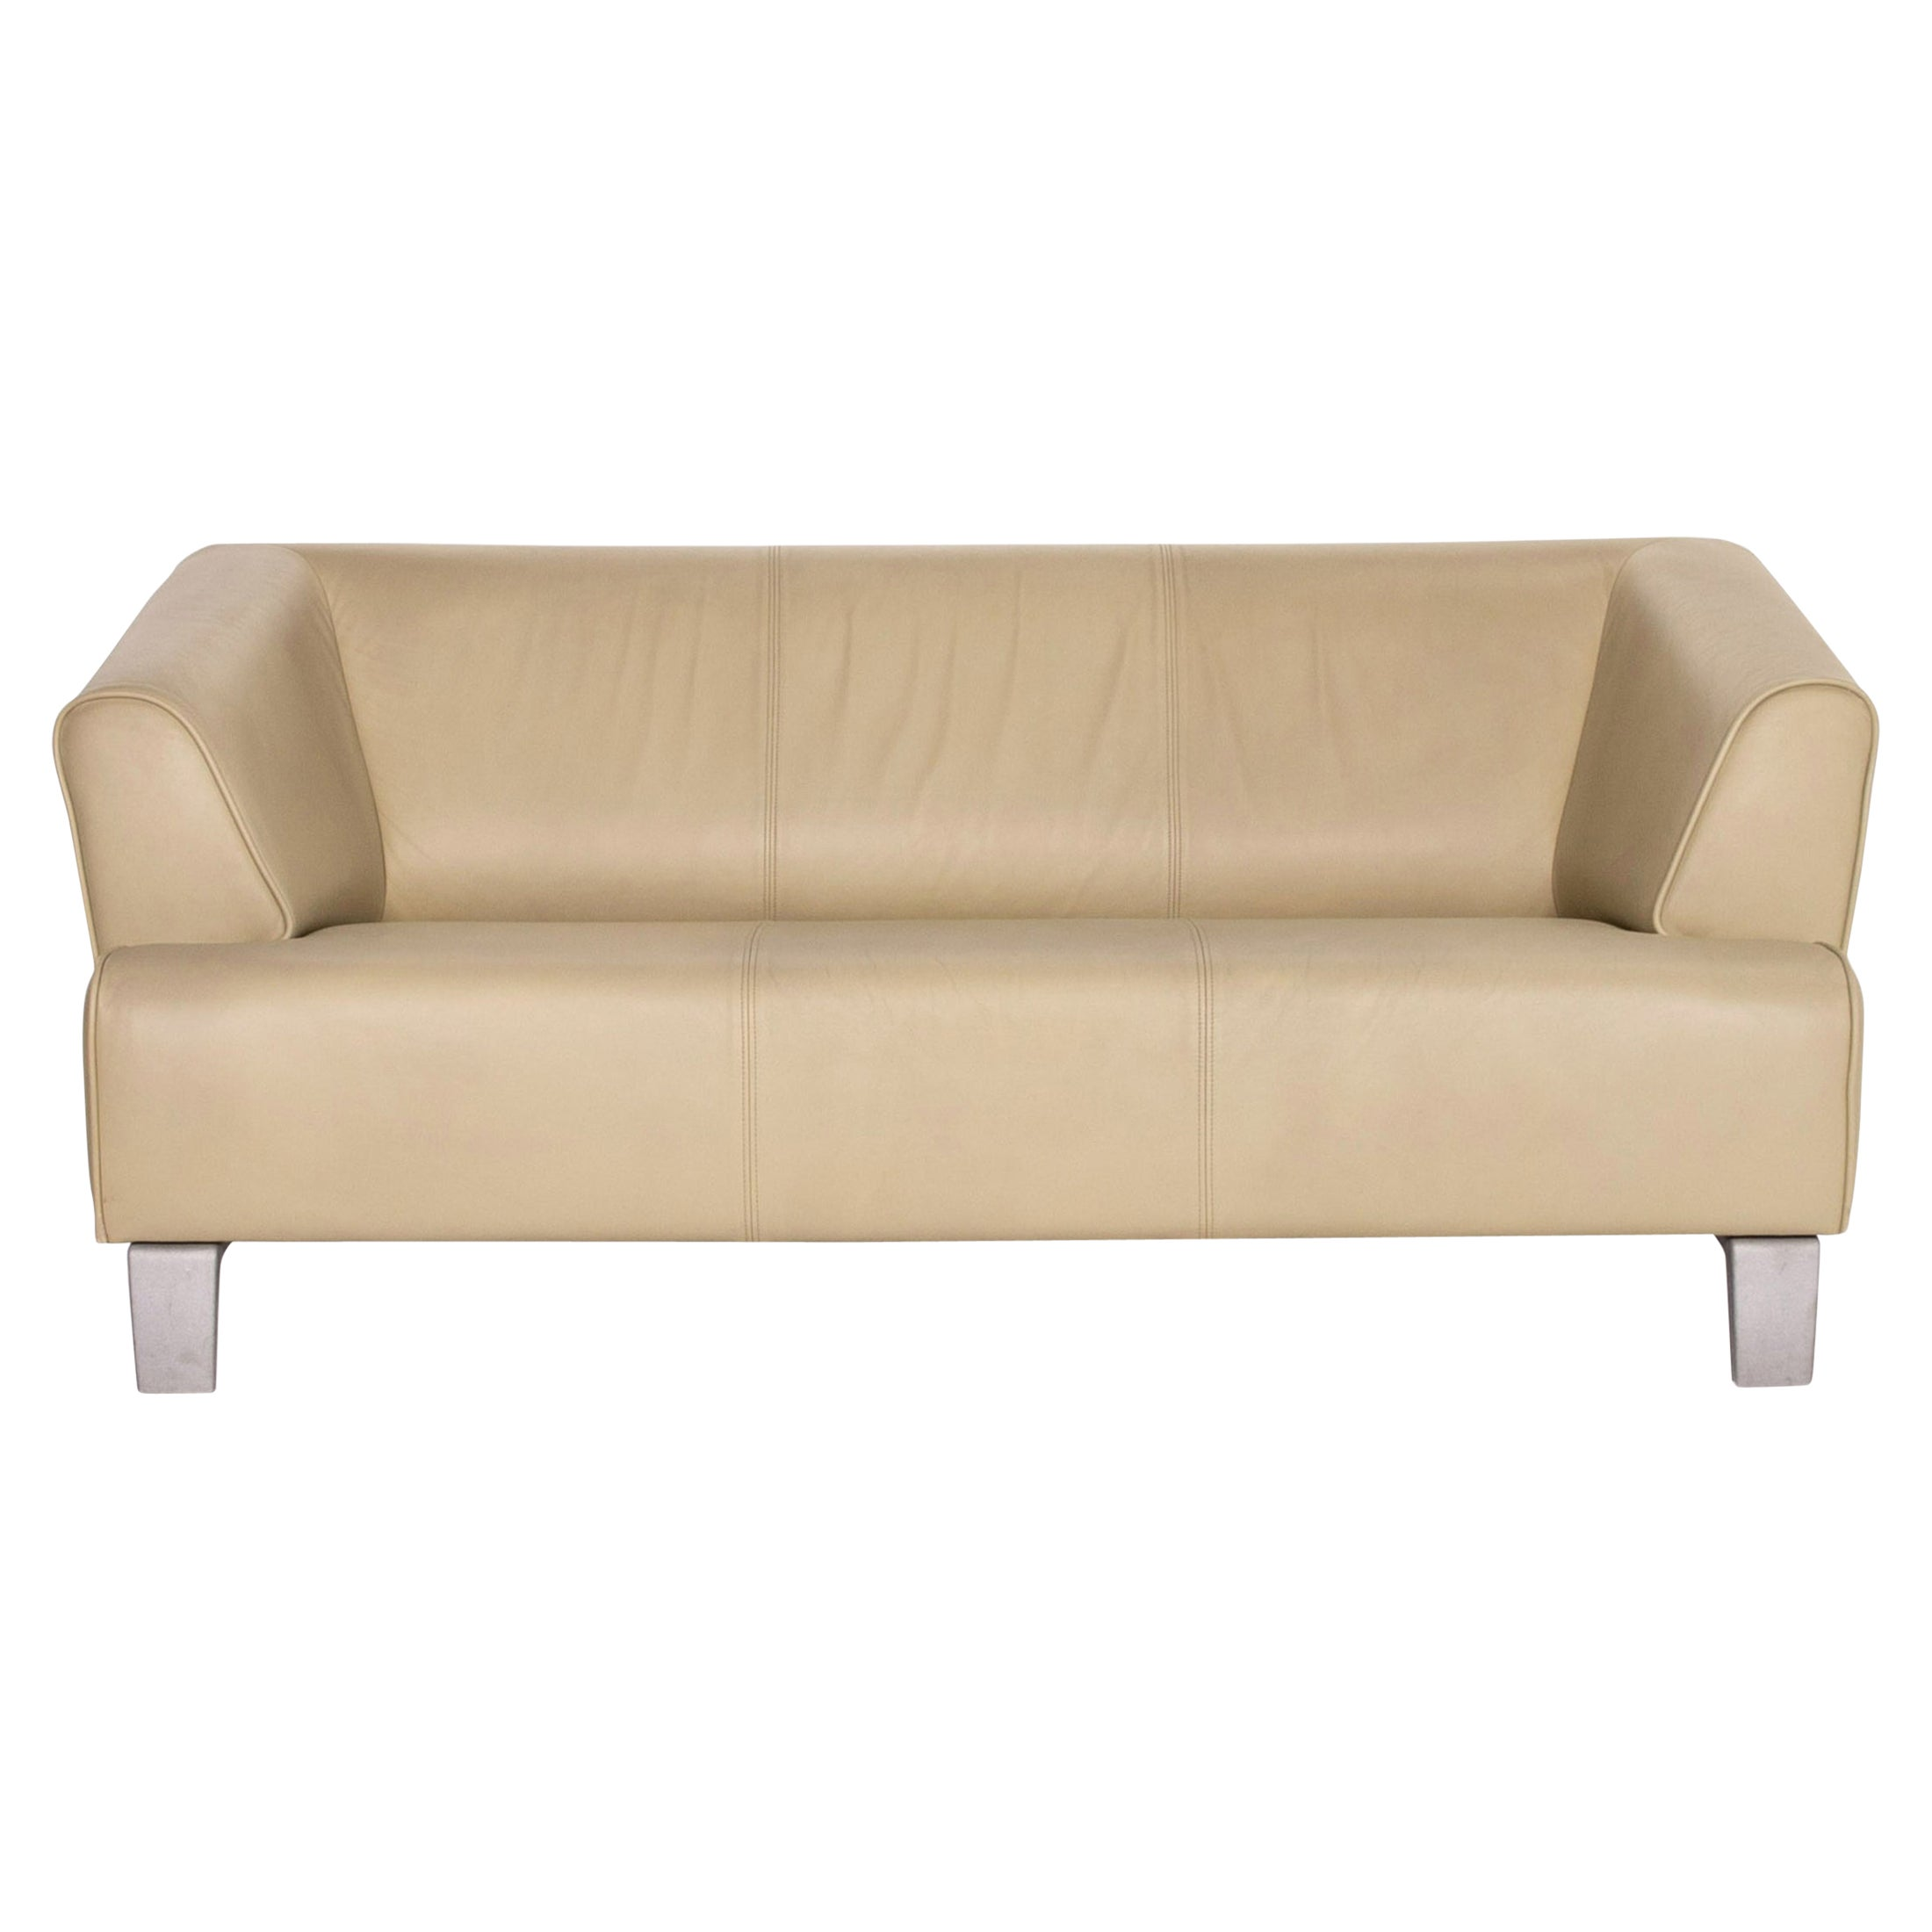 Rolf Benz Leather Sofa Green Lime Green Two-Seater Couch